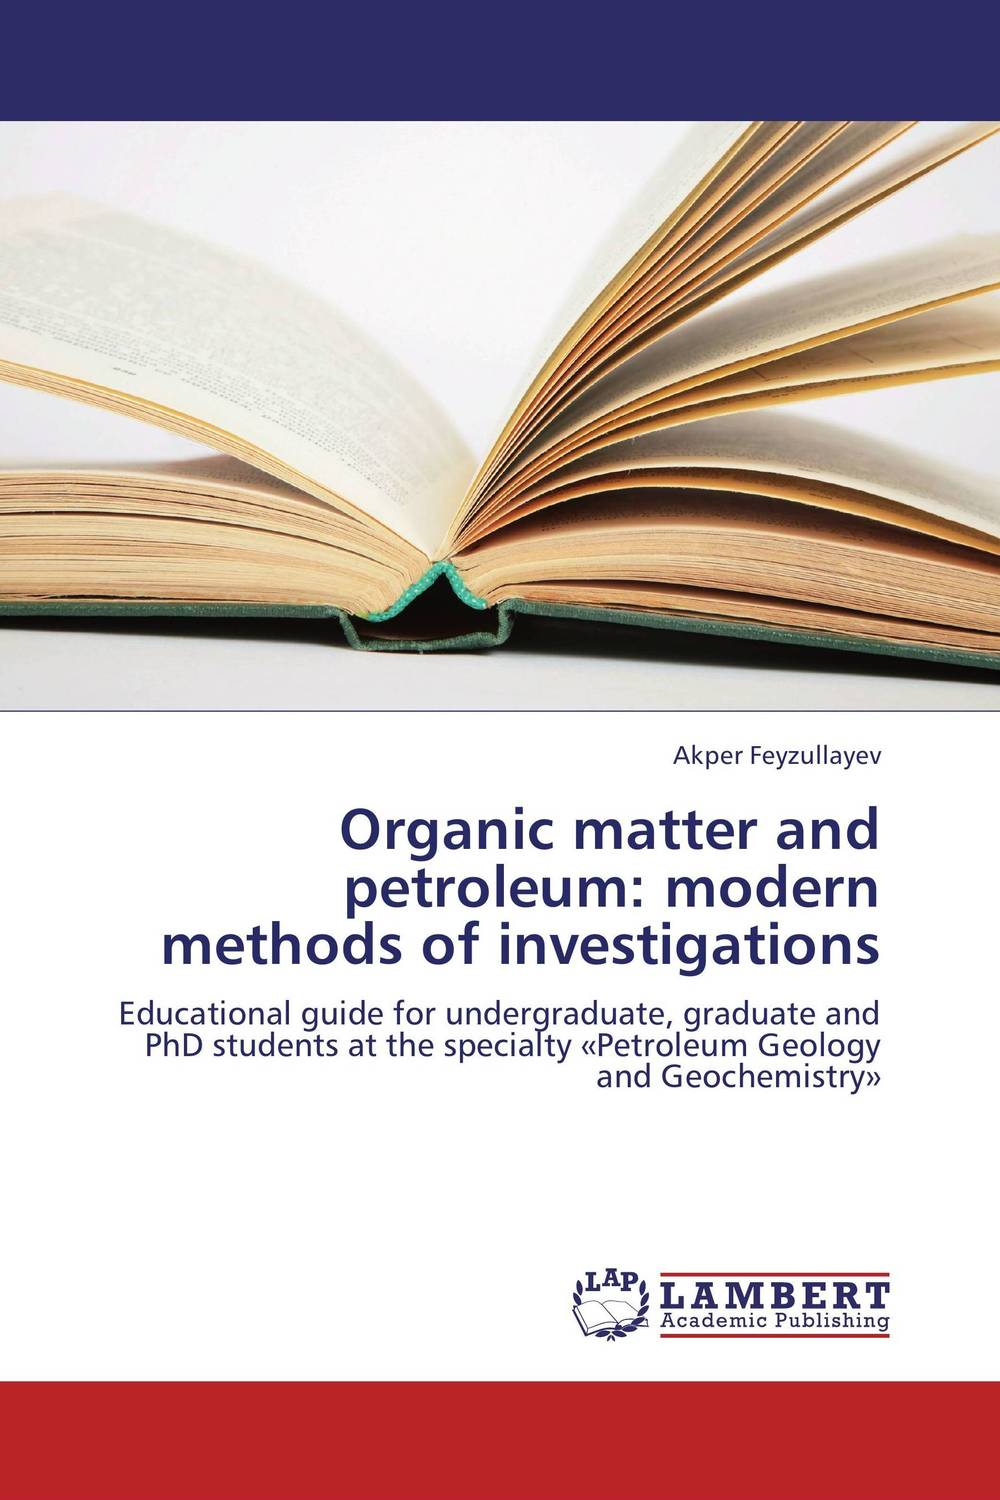 Organic matter and petroleum: modern methods of investigations belousov a security features of banknotes and other documents methods of authentication manual денежные билеты бланки ценных бумаг и документов